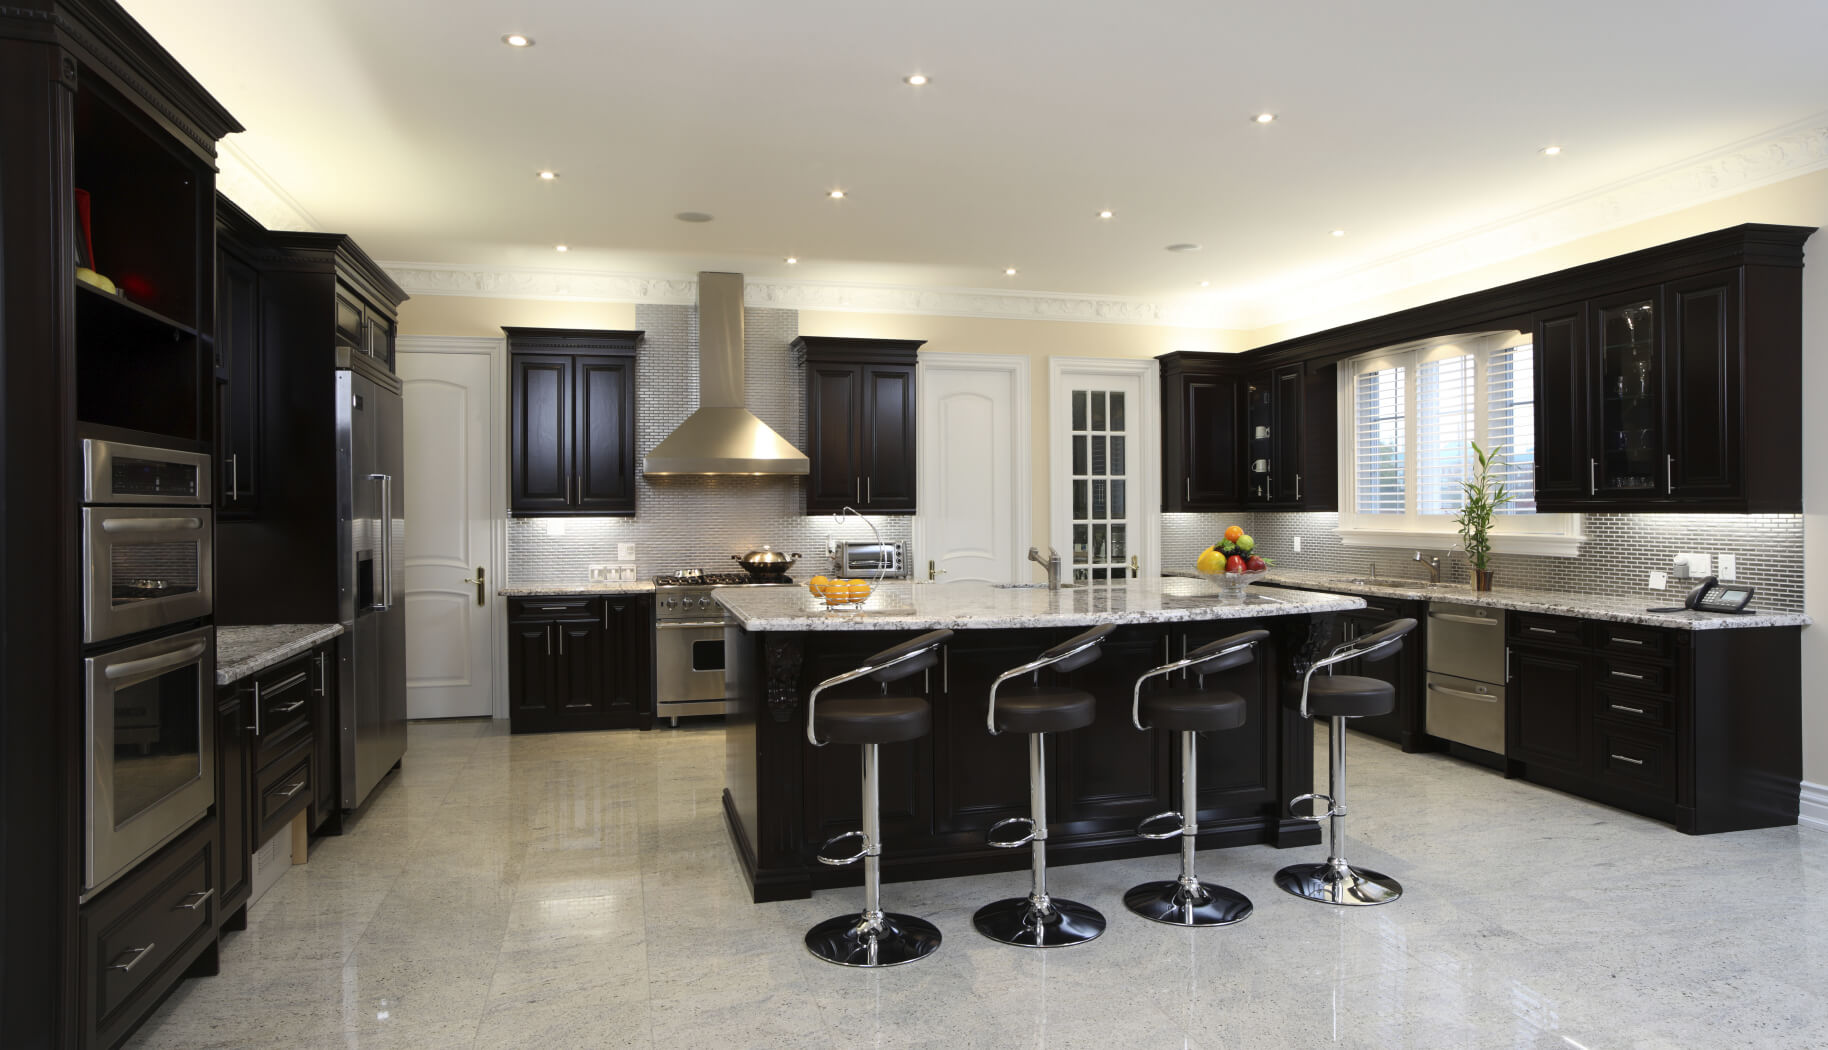 dark kitchen cabinets dark kitchen cabinets Spacious modern kitchen with dark cabinetry breakfast bar 4 modern diner style stools and